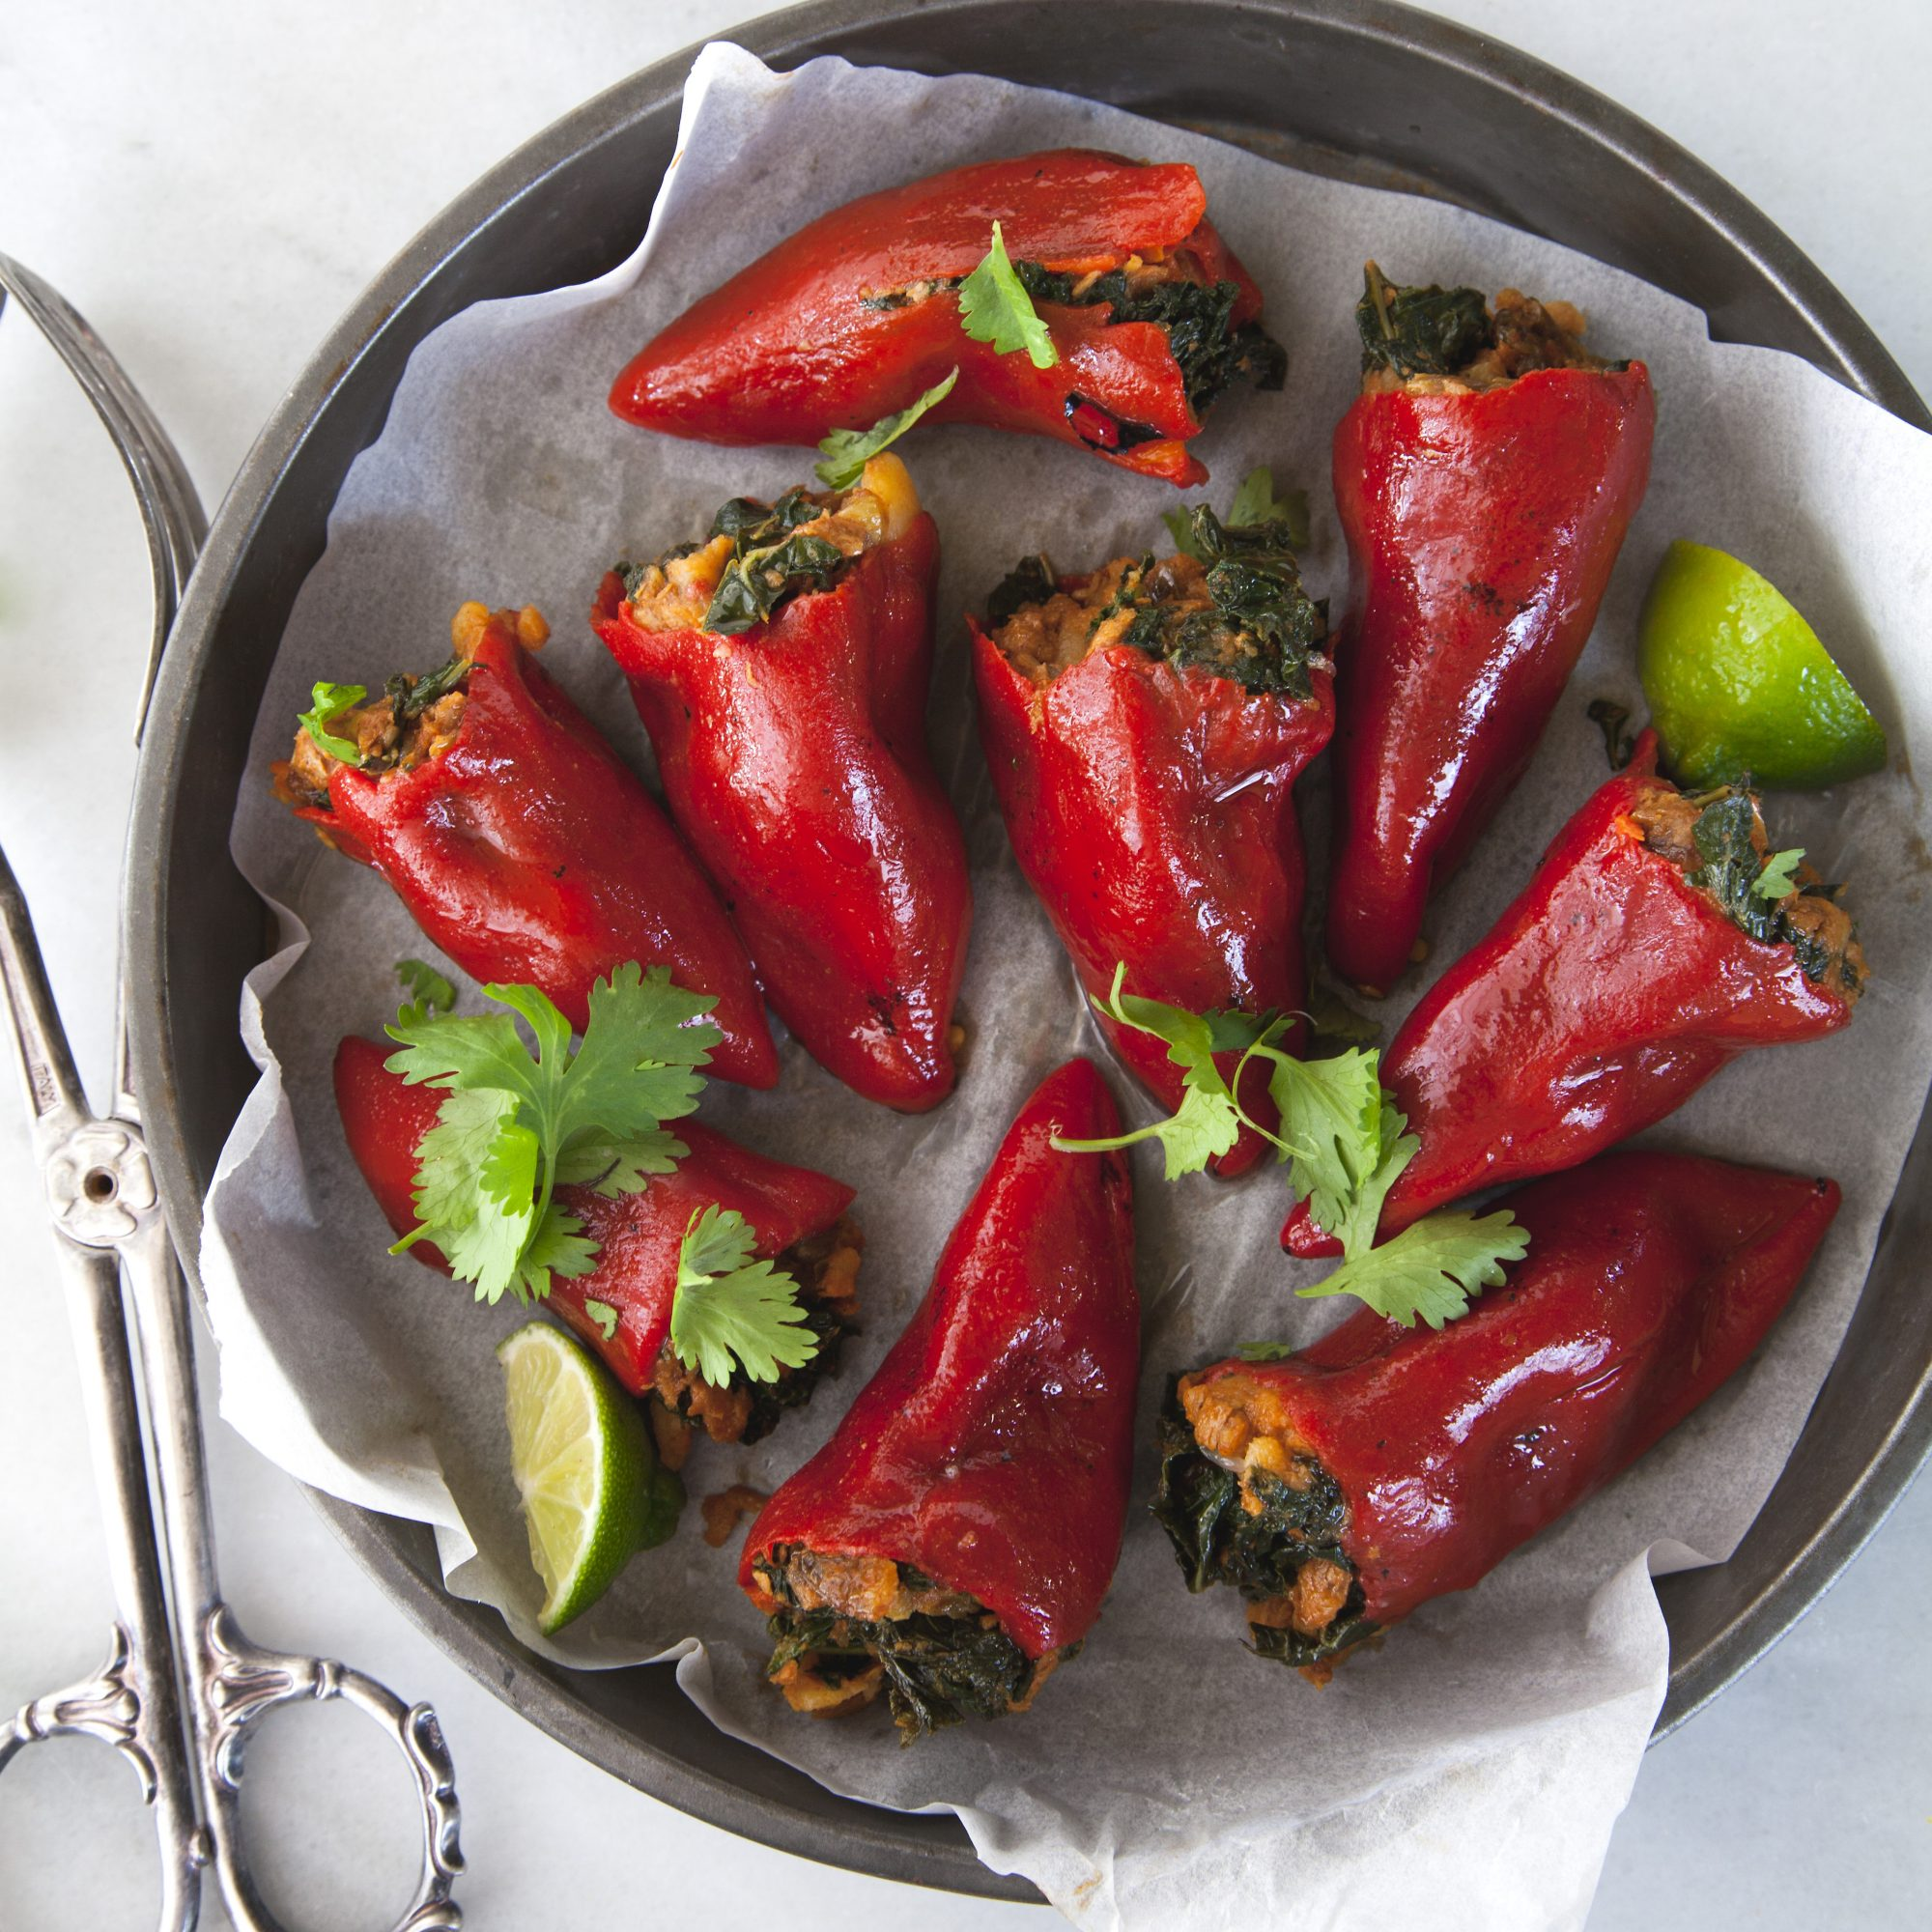 original-201401-r-chorizo-and-braised-kale-stuffed-piquillo-peppers.jpg